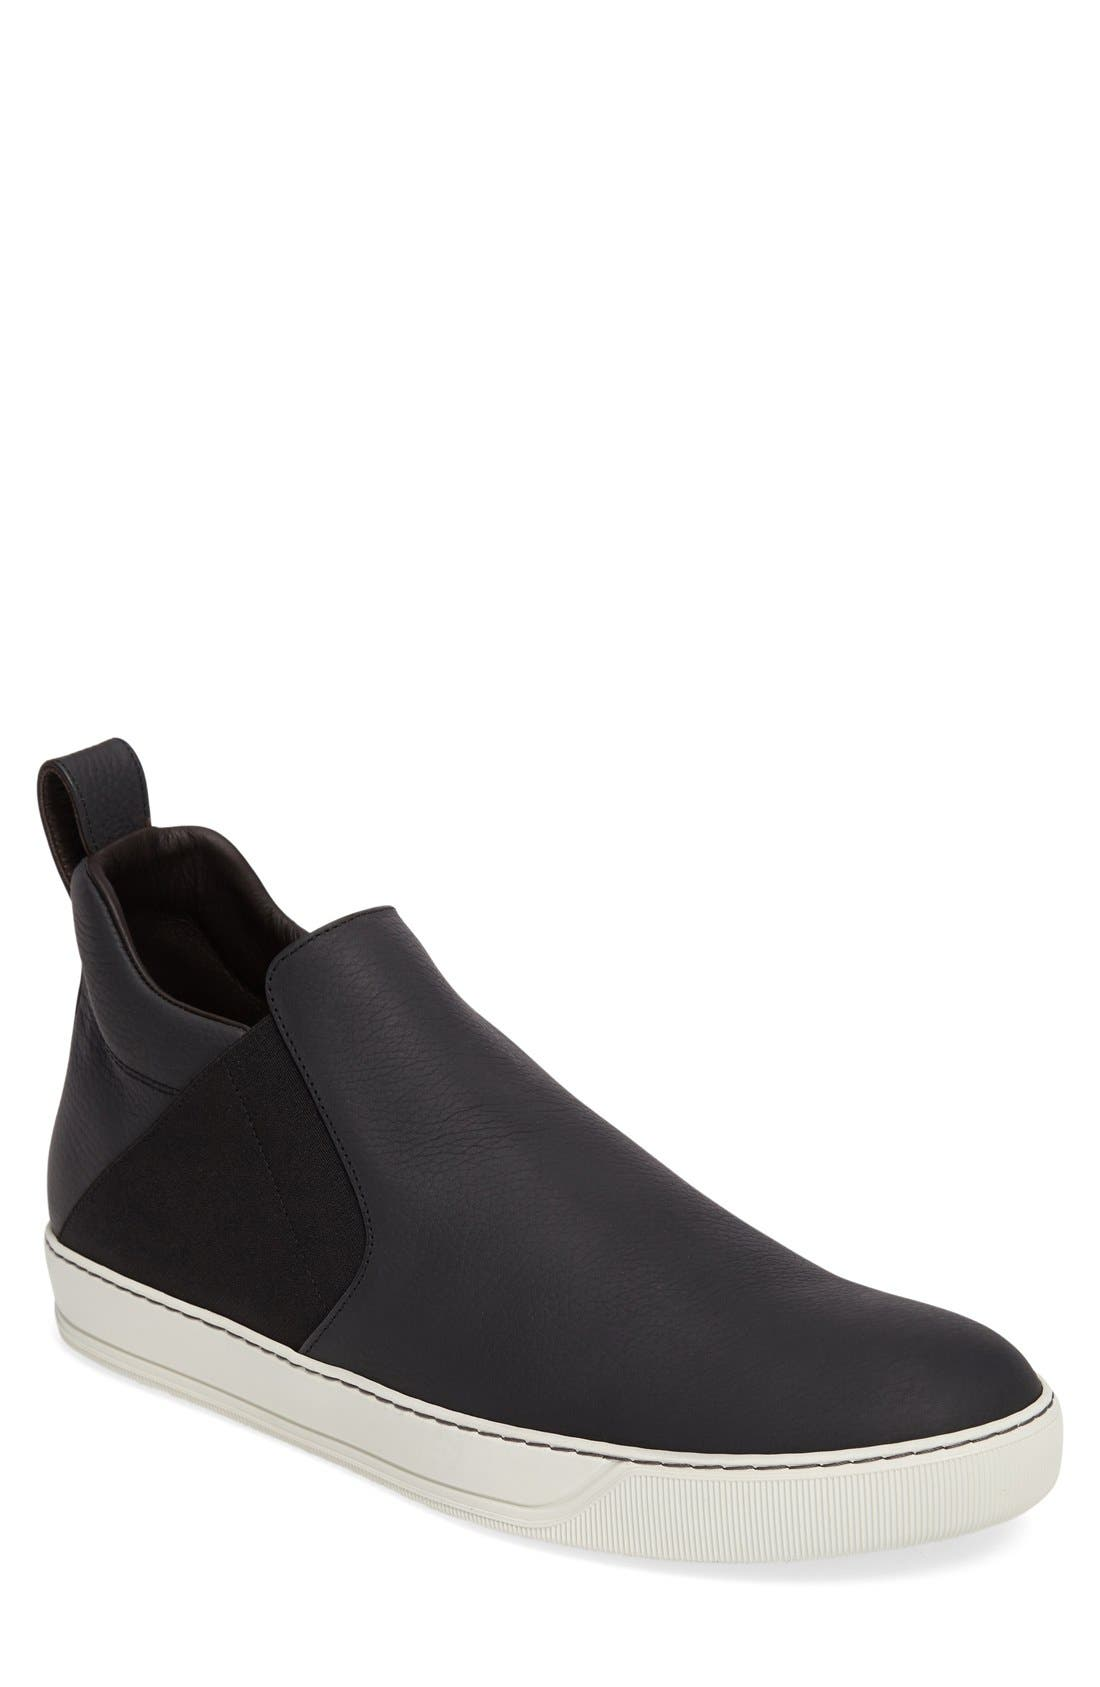 Alternate Image 1 Selected - Lanvin Mid Slip-On Sneaker (Men)